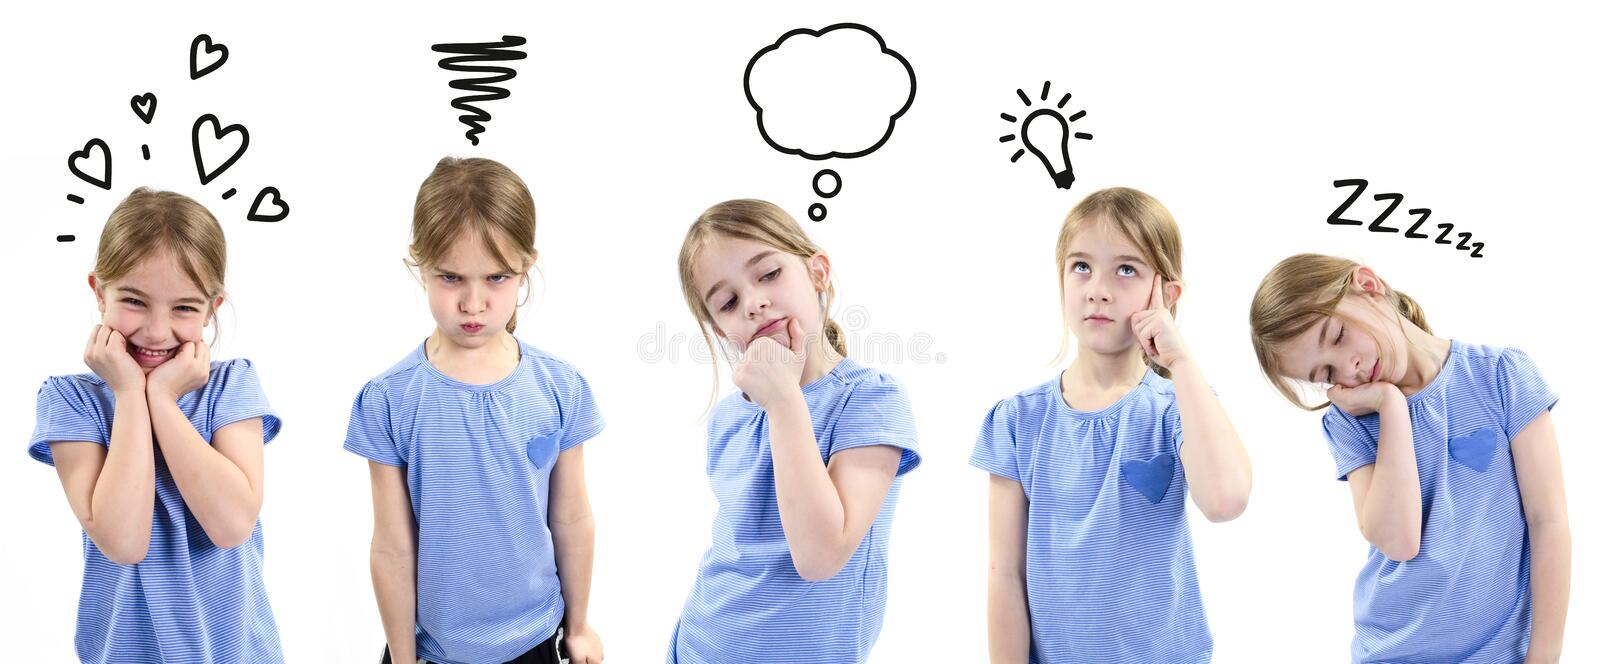 Girl showing different emotions stock images